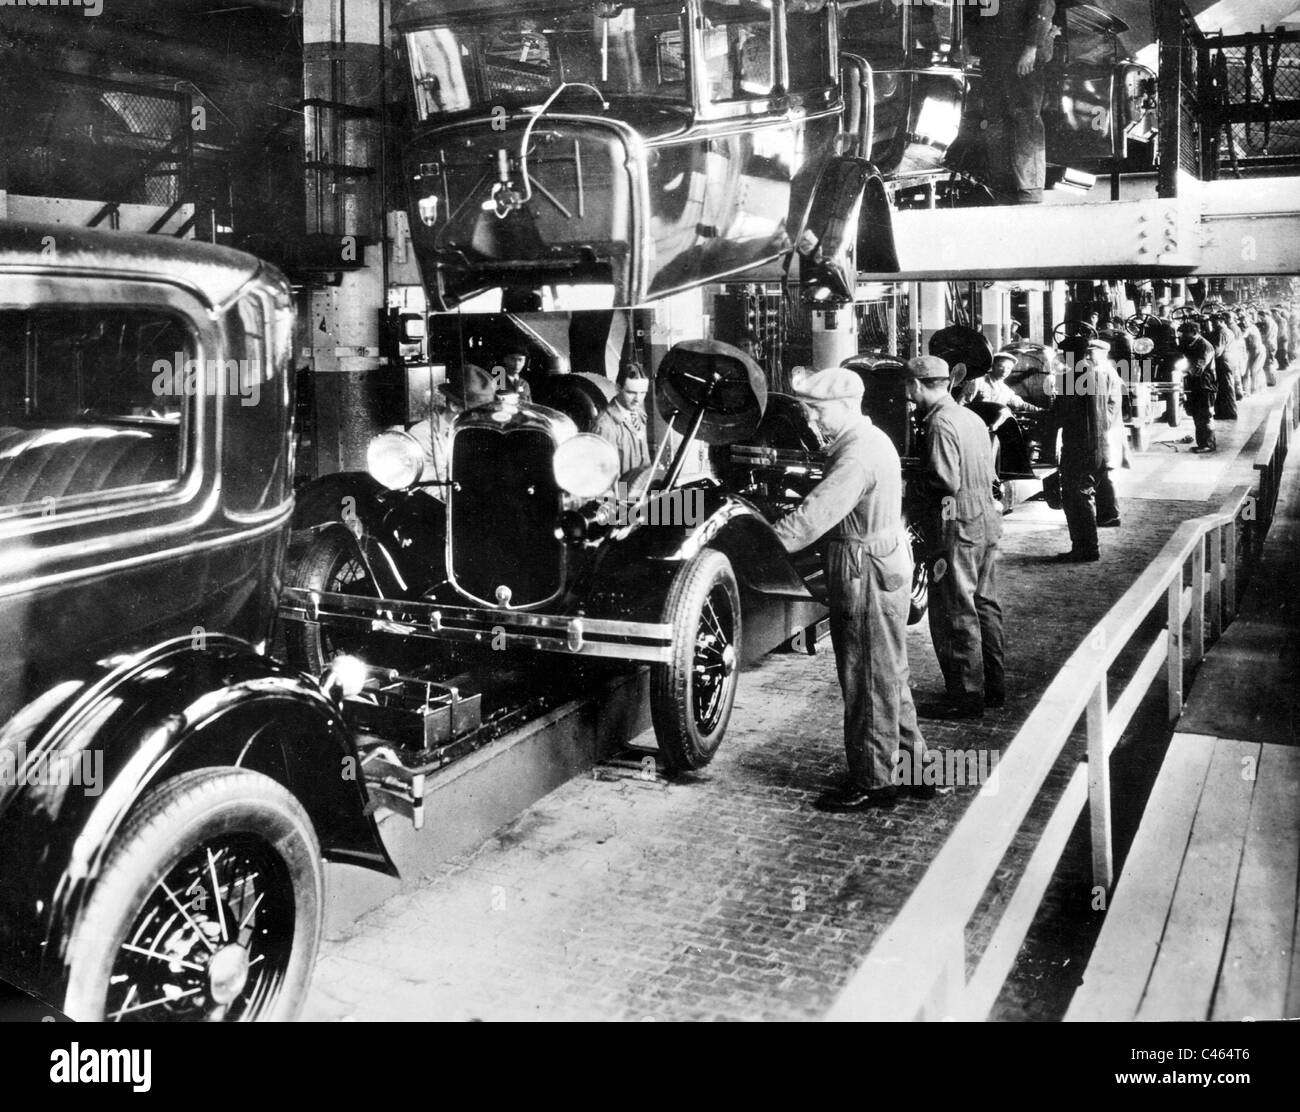 Ford car factory in Detroit 1930 & Ford car factory in Detroit 1930 Stock Photo Royalty Free Image ... markmcfarlin.com